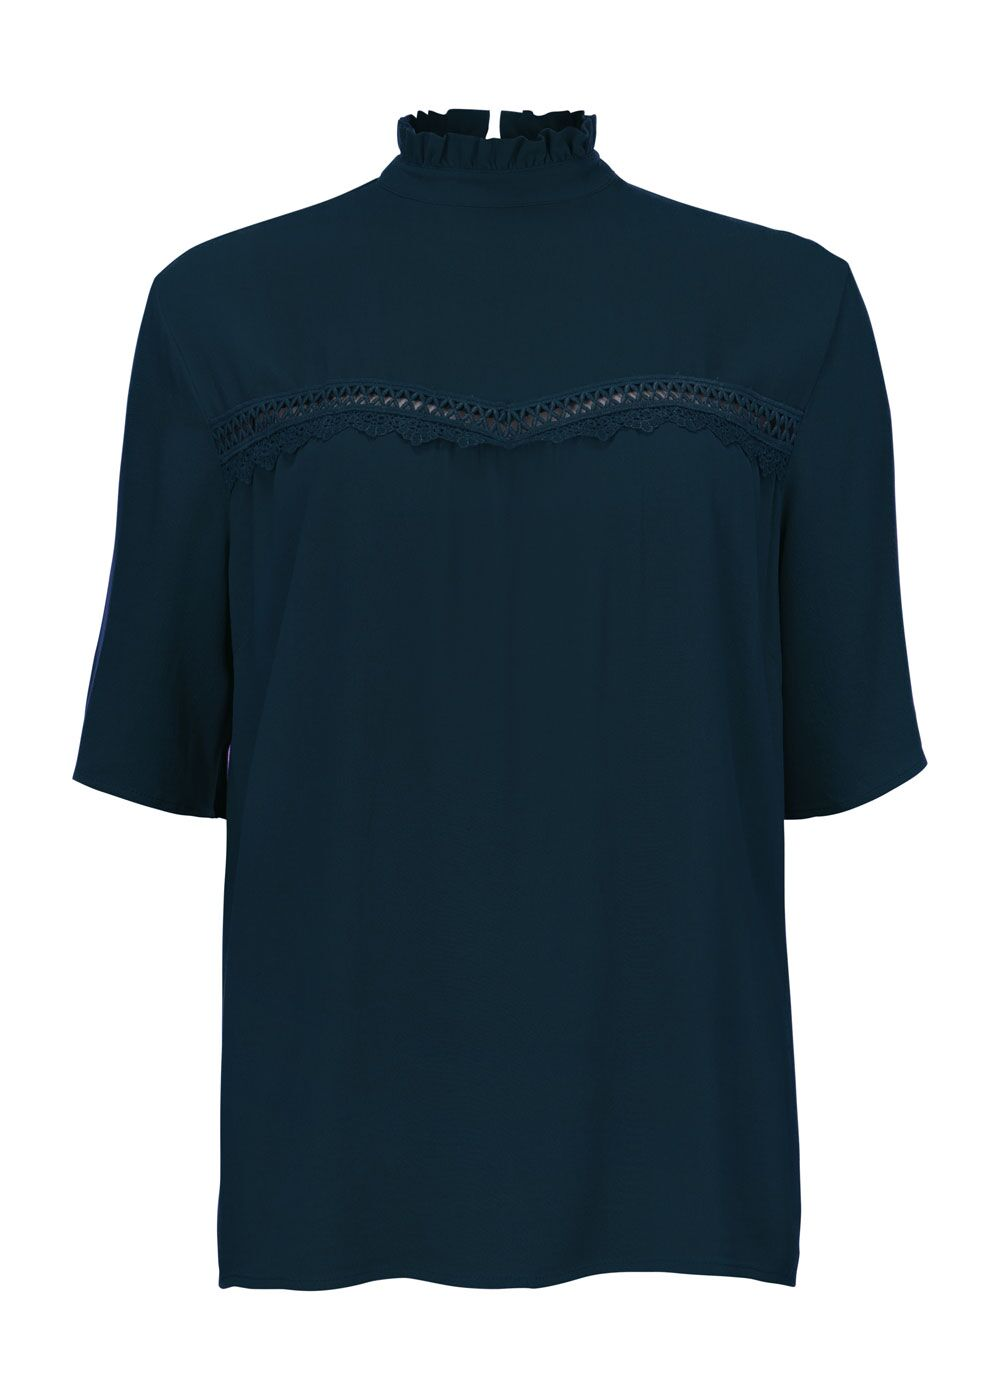 Noa Top - Navy Sky